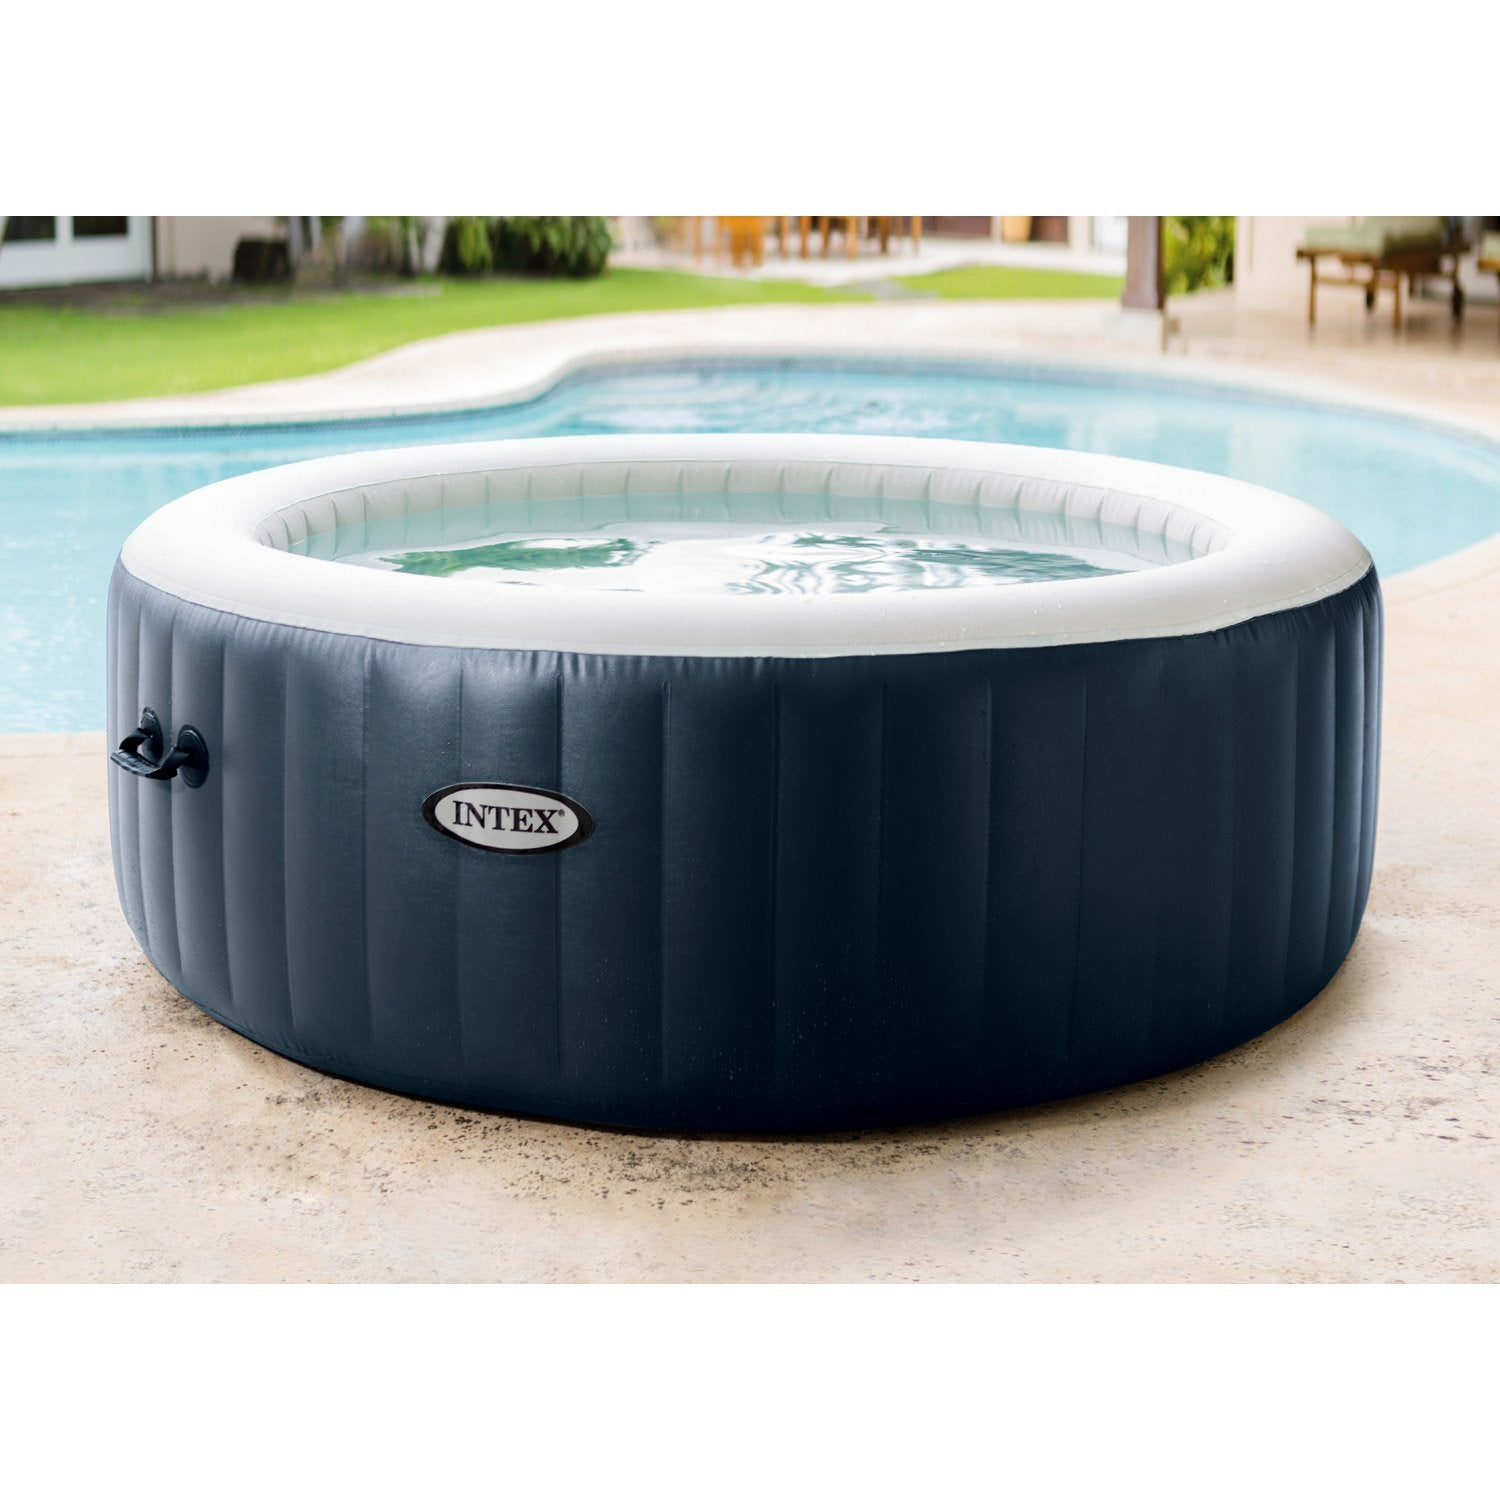 spa gonflable intex purespa bulles blue navy rond 6